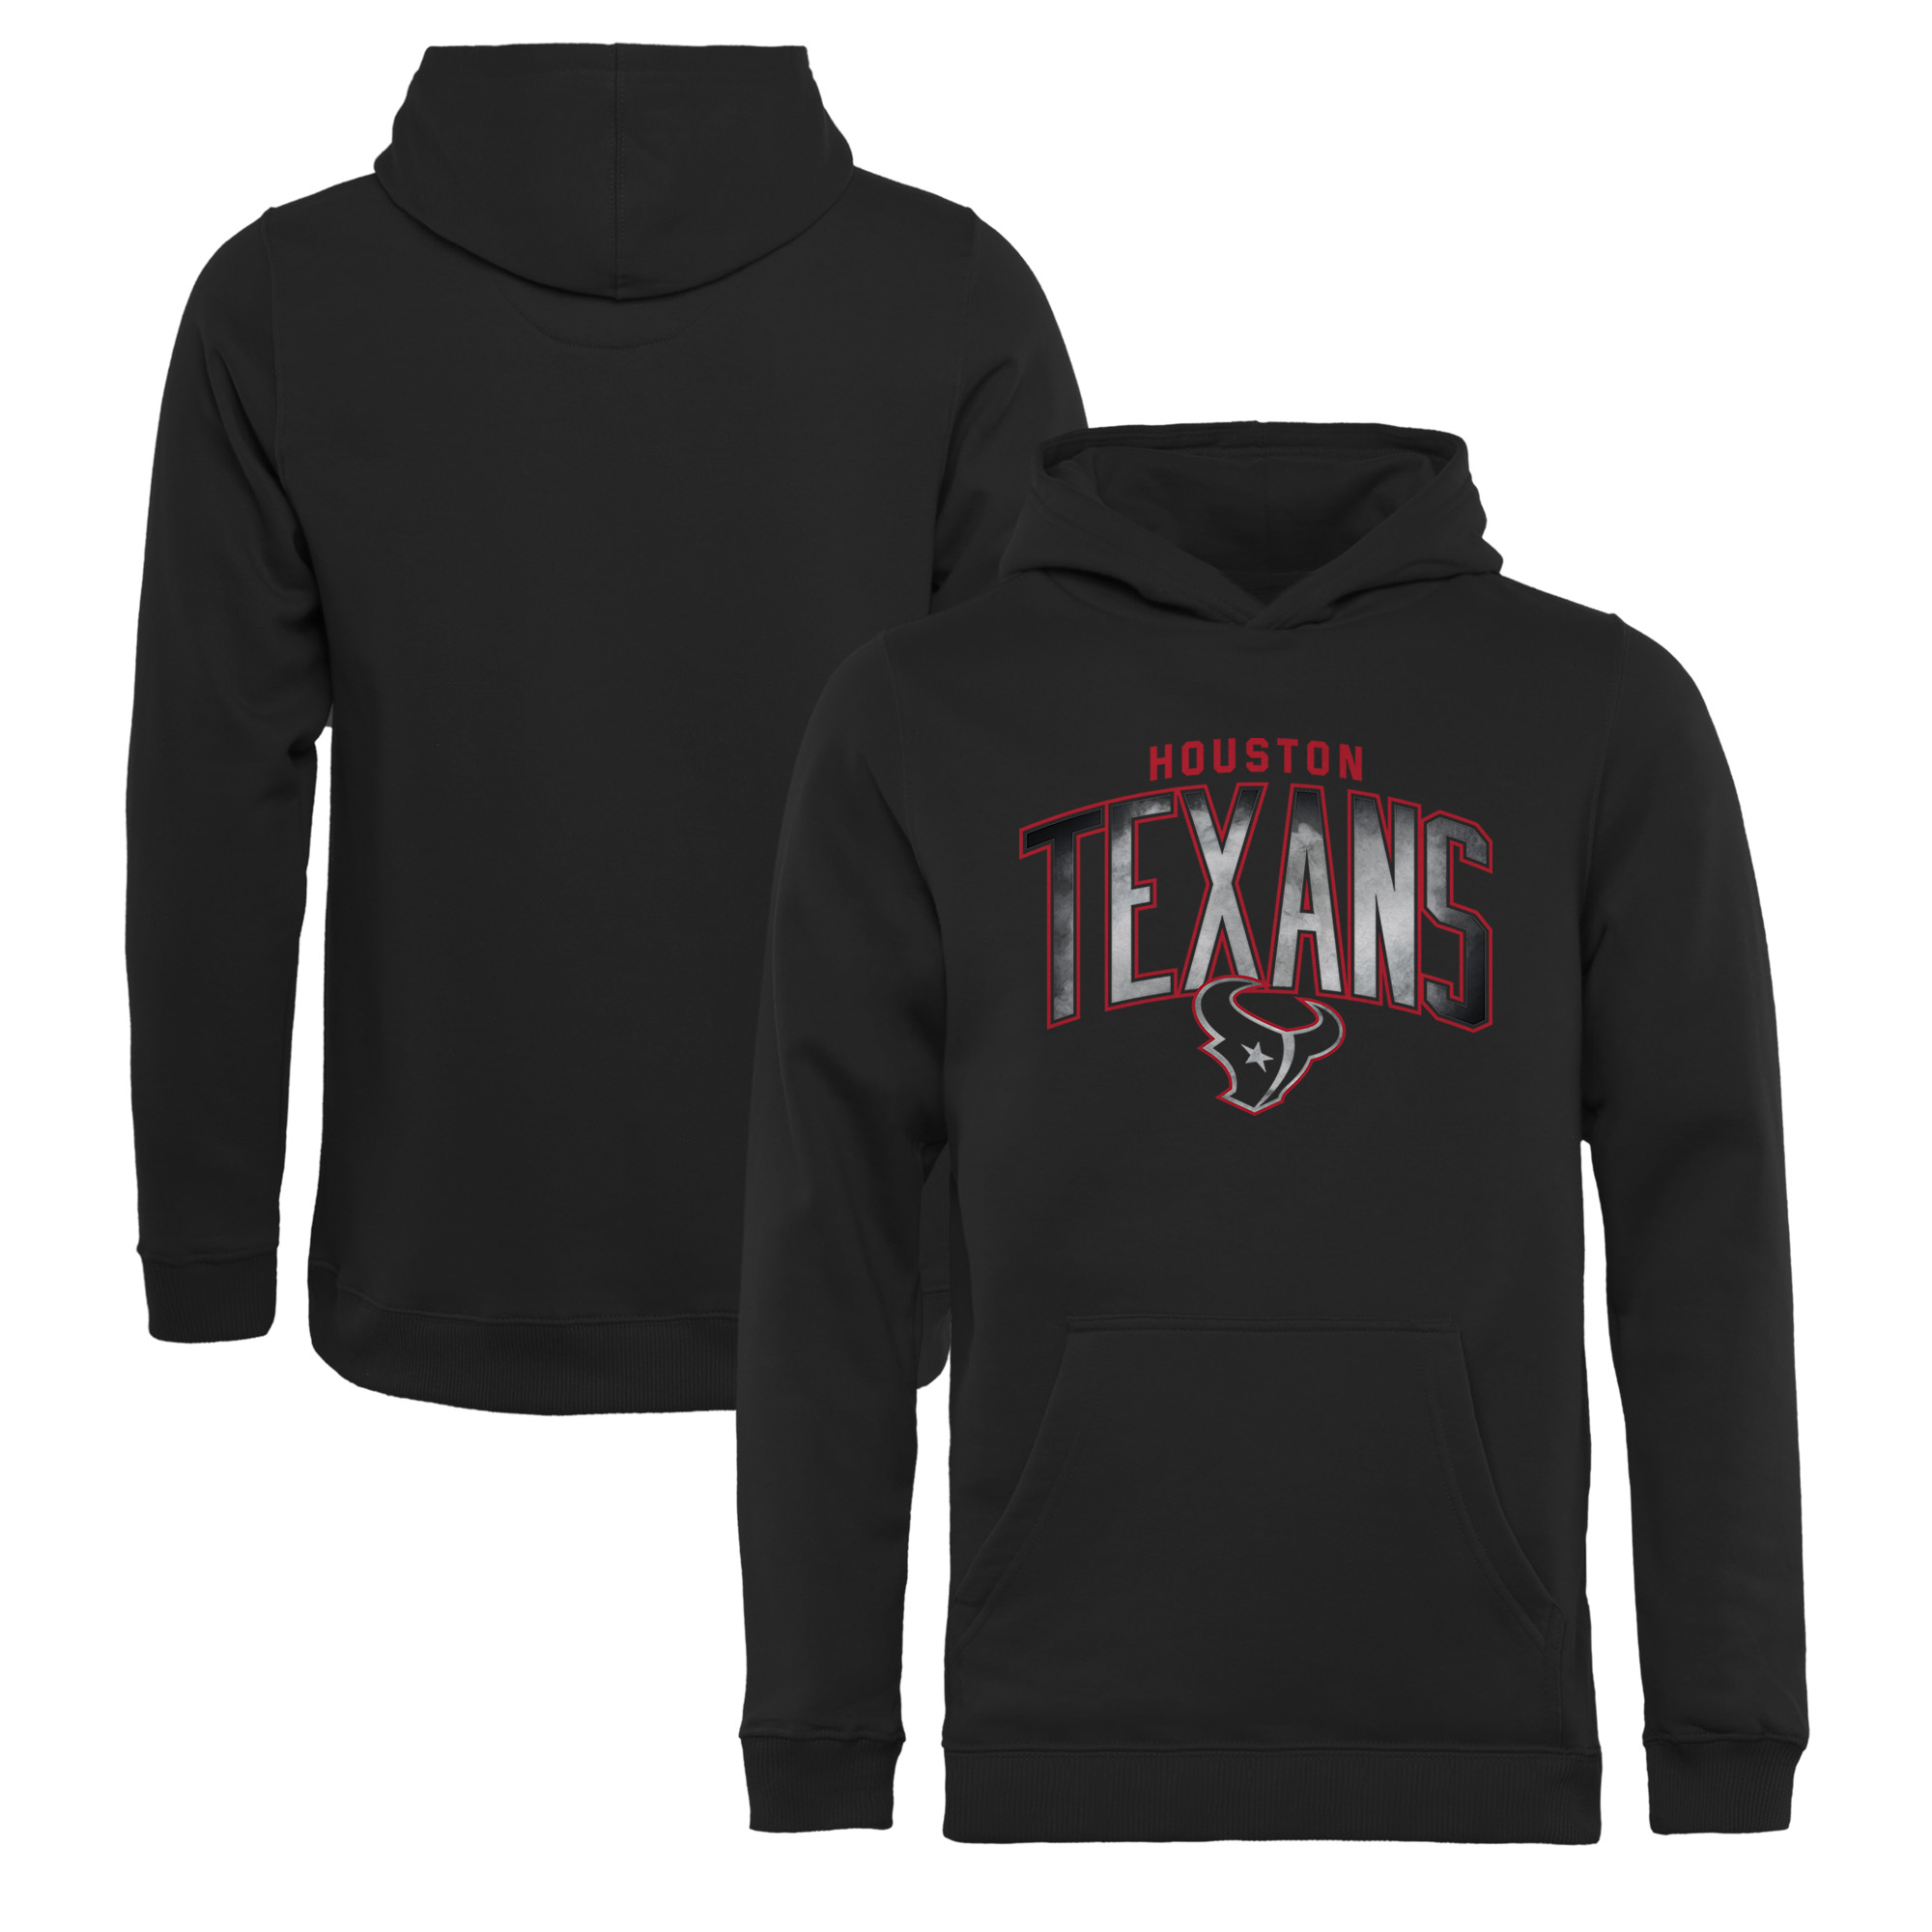 Houston Texans NFL Pro Line by Fanatics Branded Youth Arch Smoke Pullover Hoodie - Black